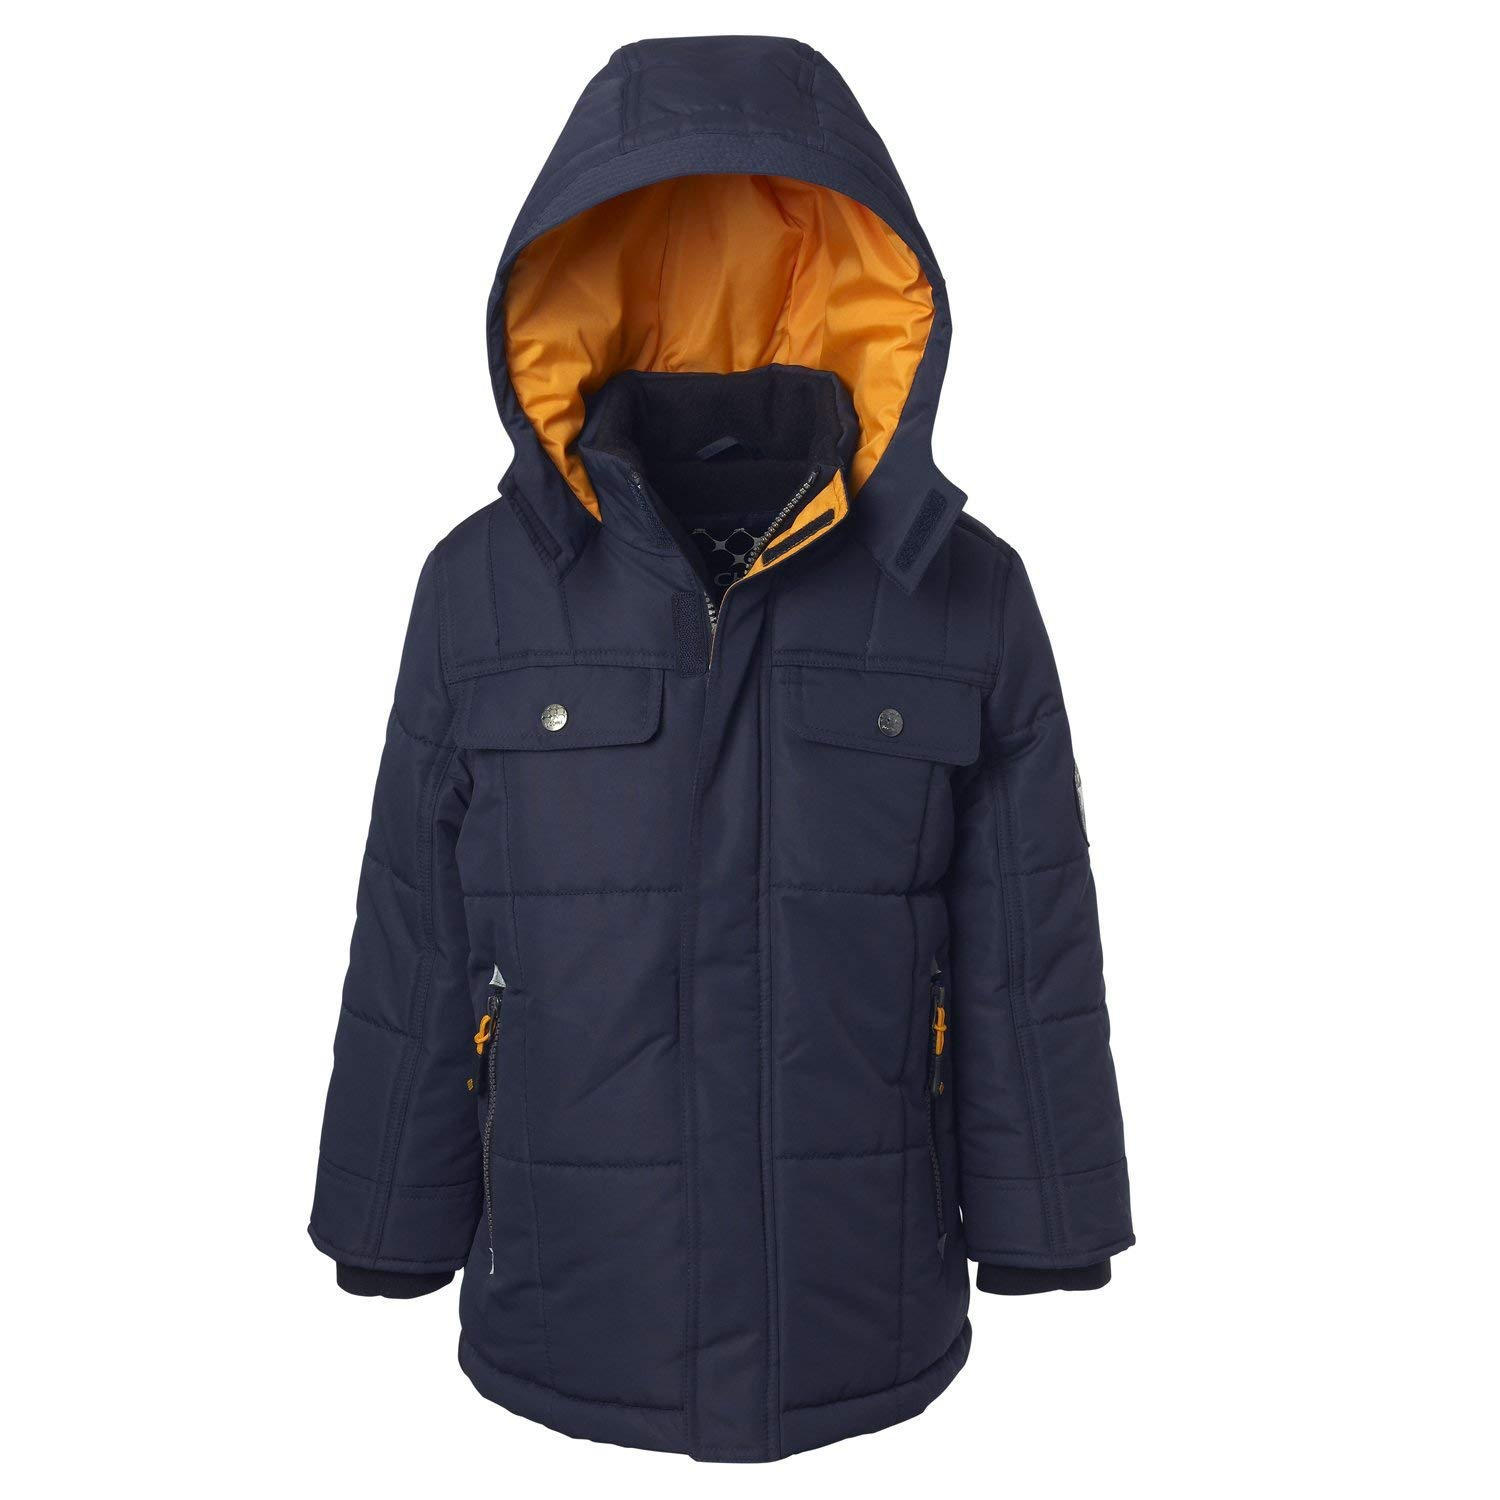 Big Chill Expedition Jacket for Big & Little Boys – Quilted with Hood